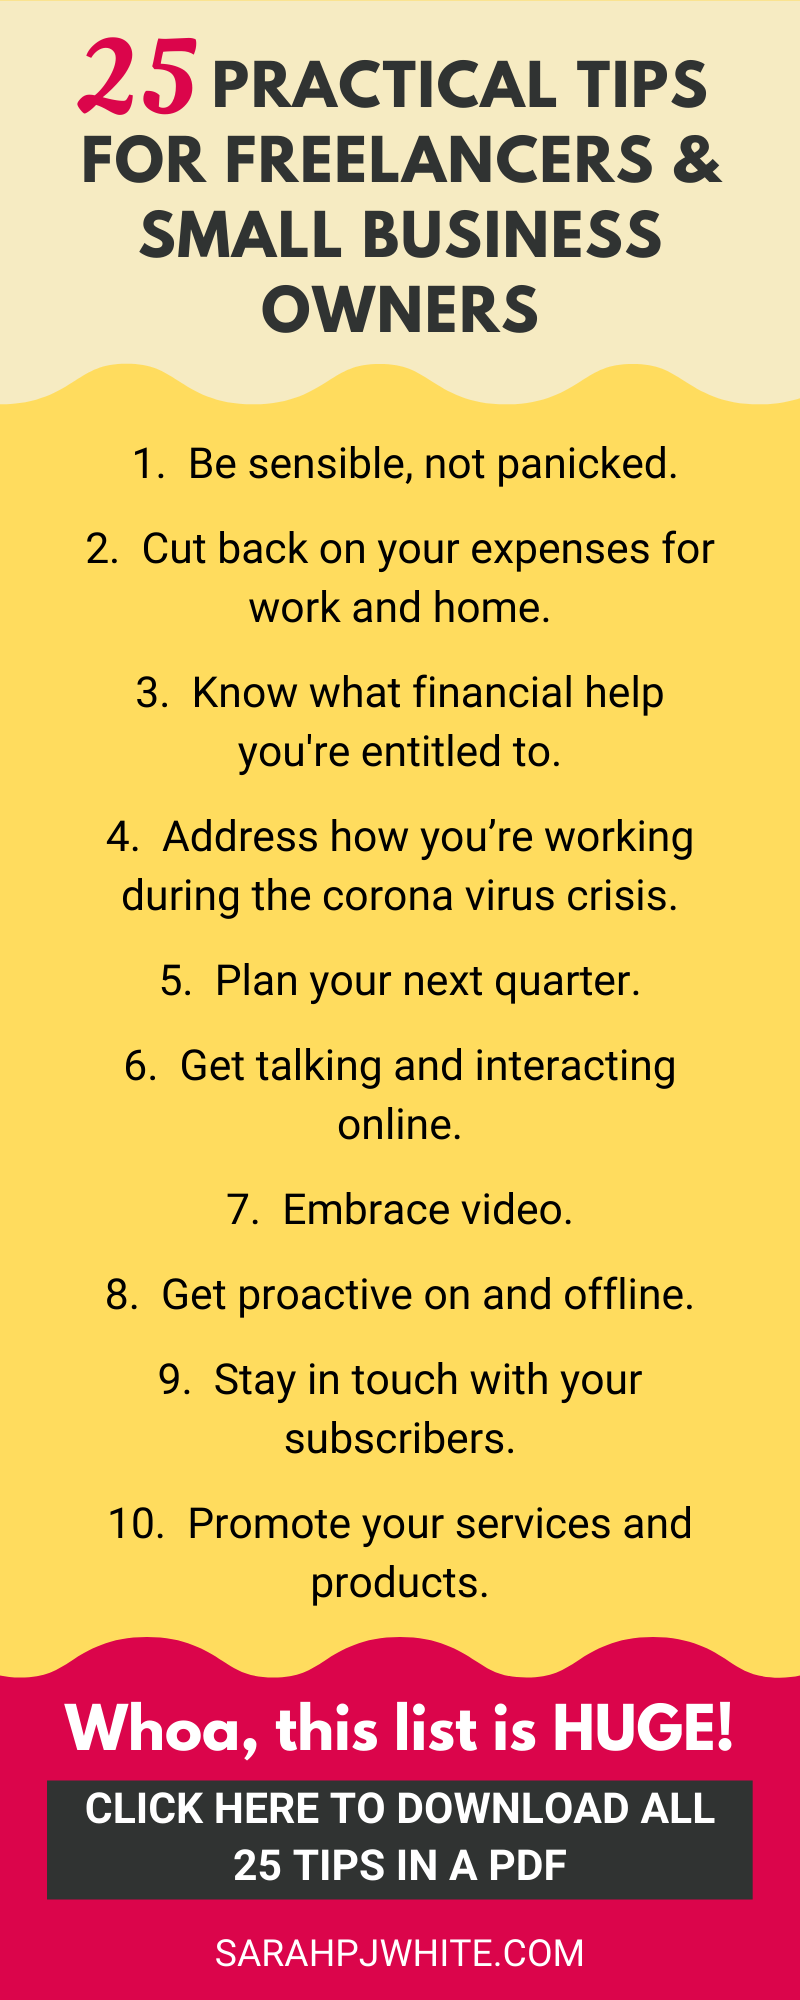 25 Practical tips for freelancers & online business owners who want to calm the fear & get productive.